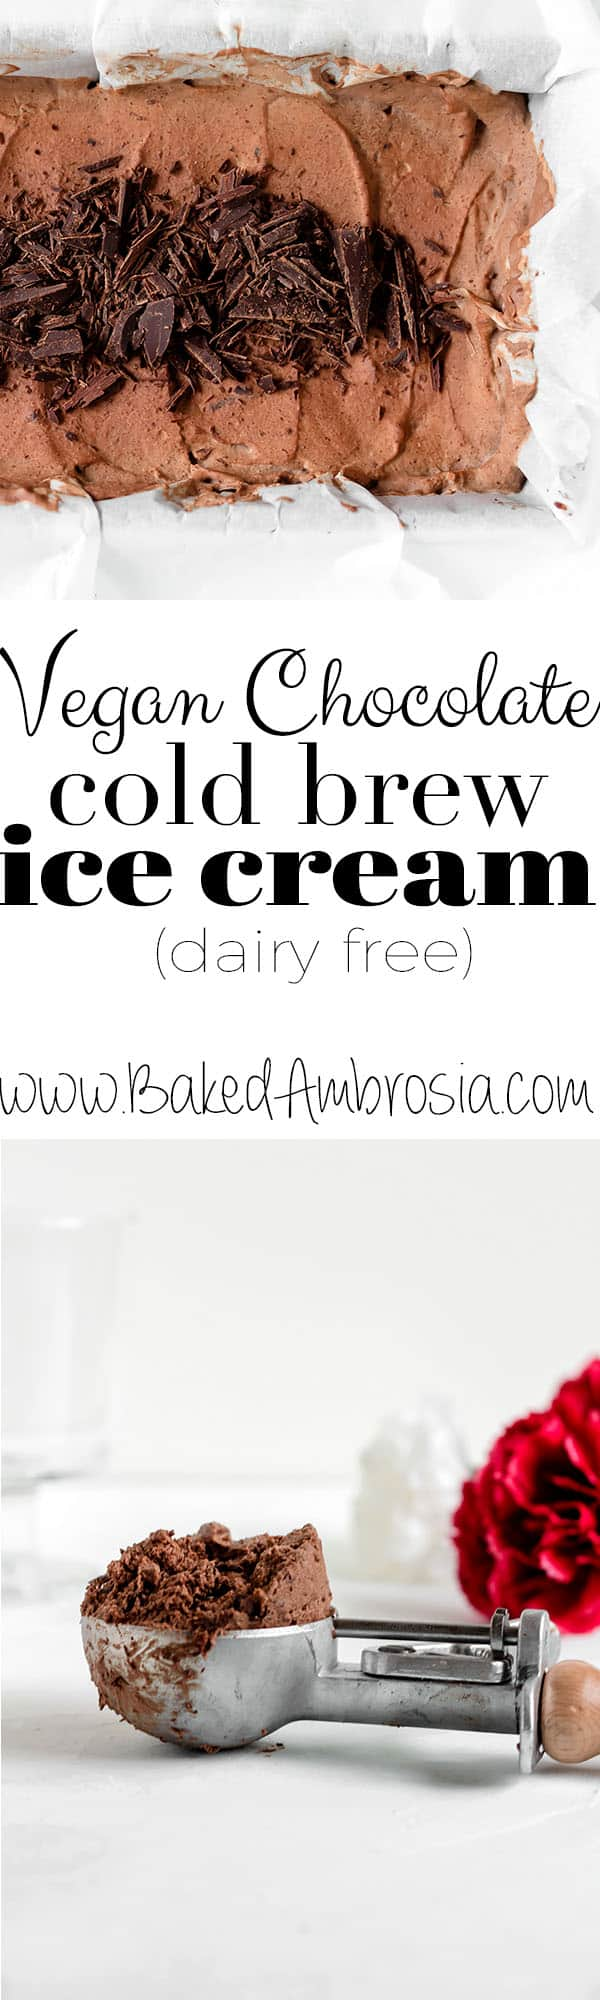 Vegan Chocolate Cold Brew Ice Cream (dairy free)